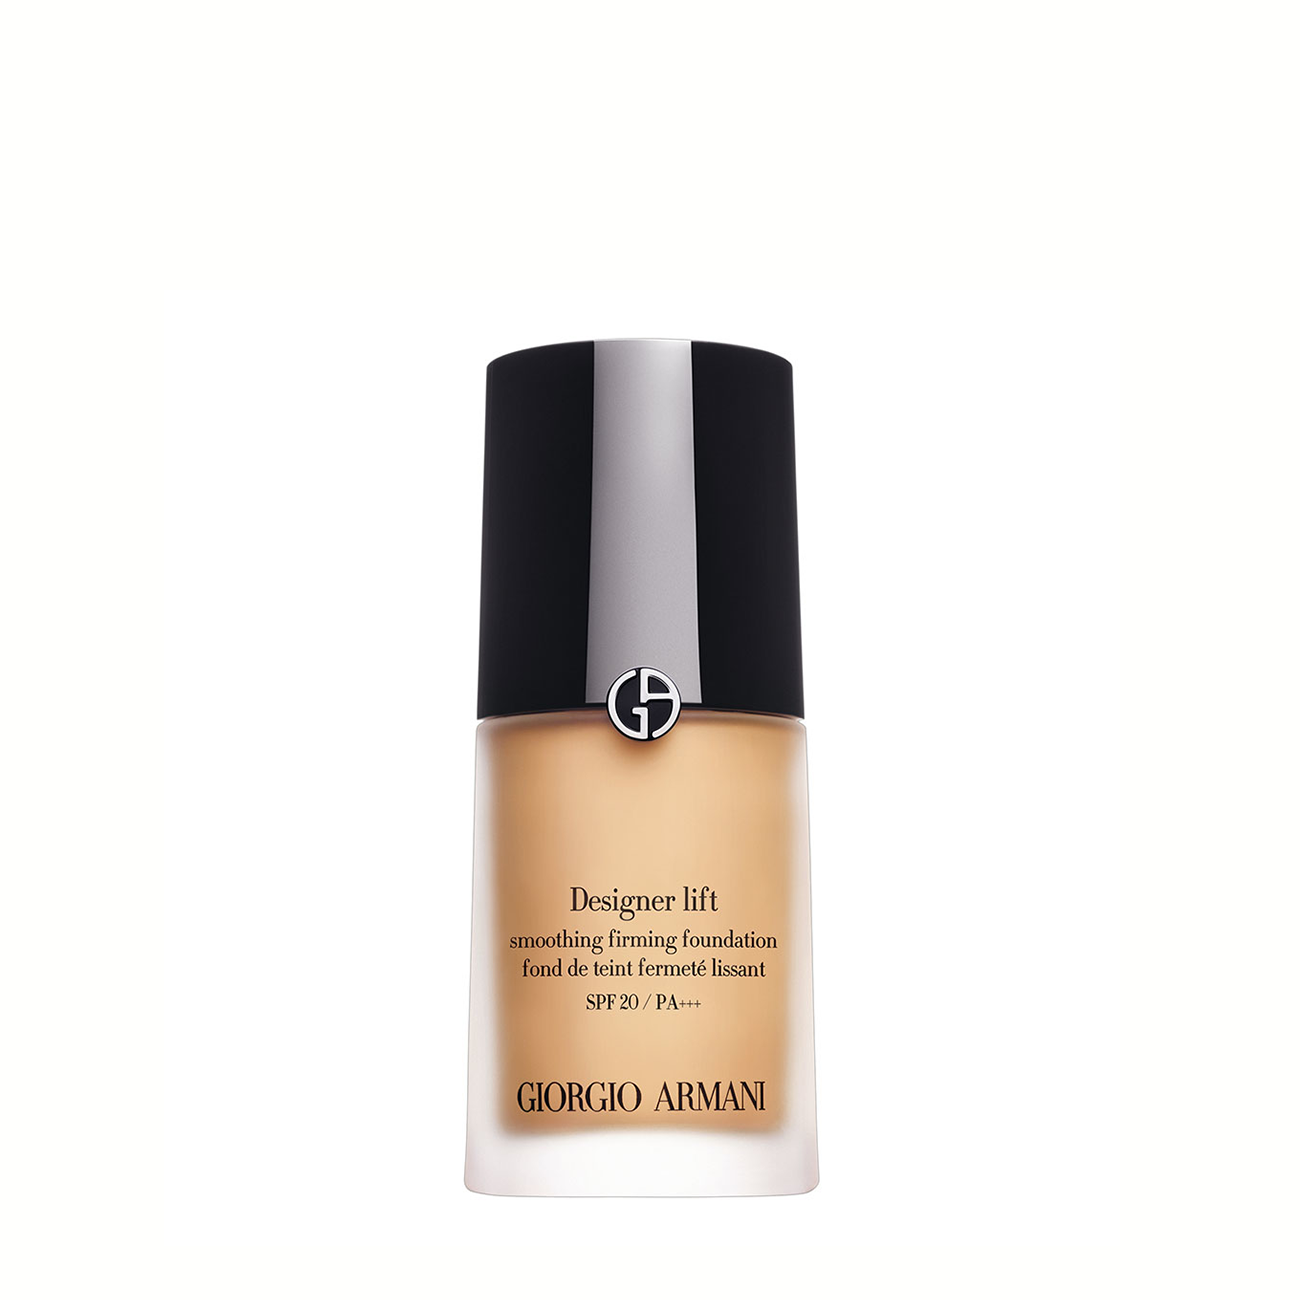 Designer Lift Foundation 4 30ml Giorgio Armani imagine 2021 bestvalue.eu